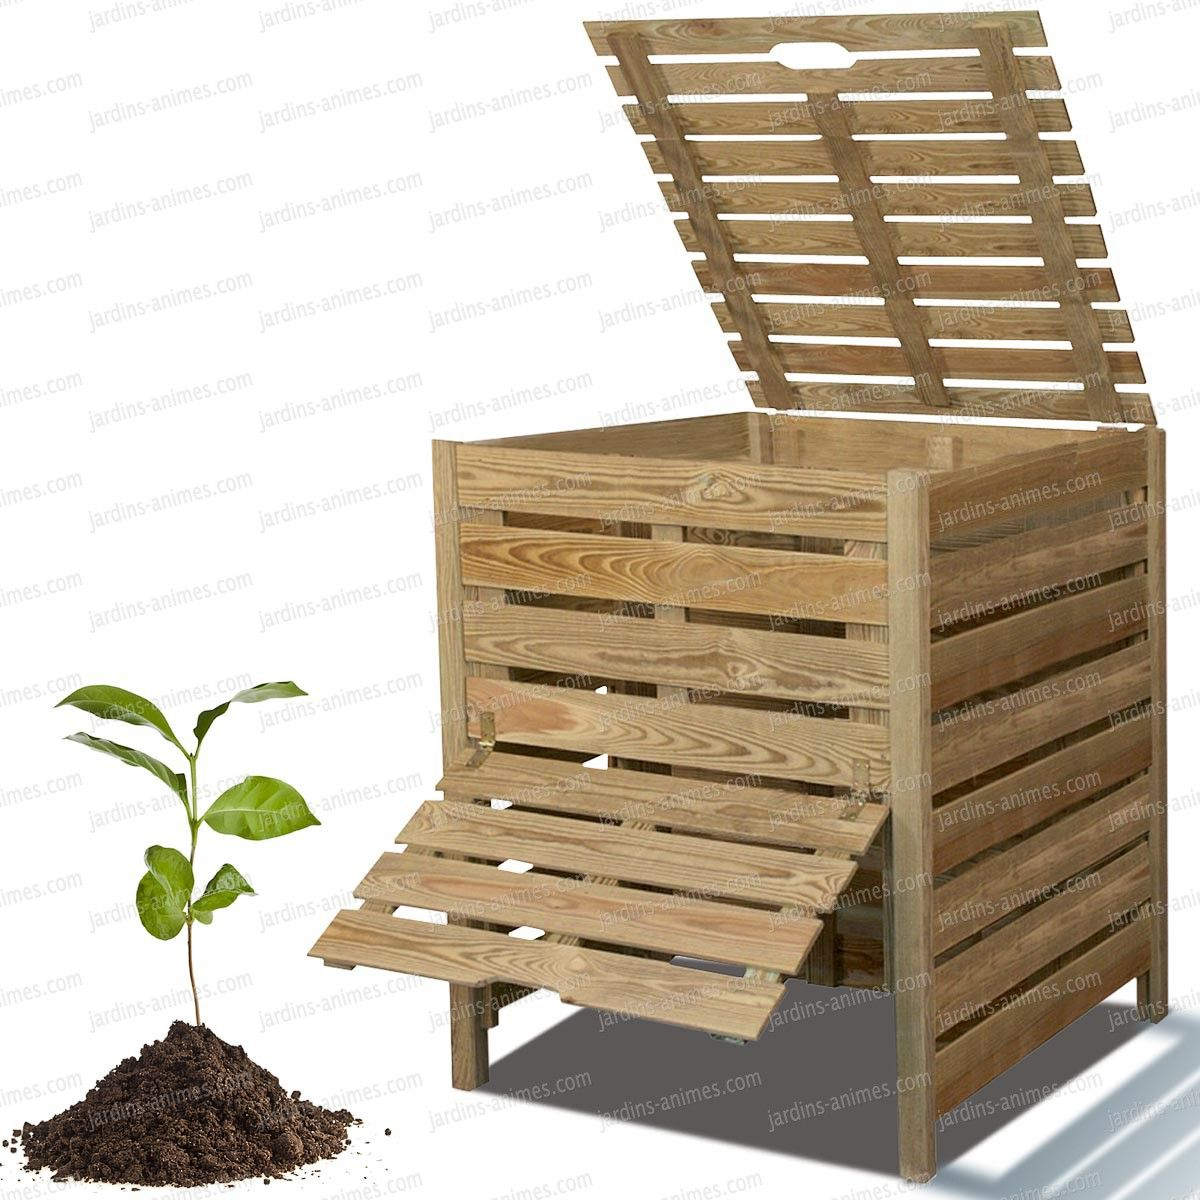 composteur bois 800l en pin trait composting garden. Black Bedroom Furniture Sets. Home Design Ideas